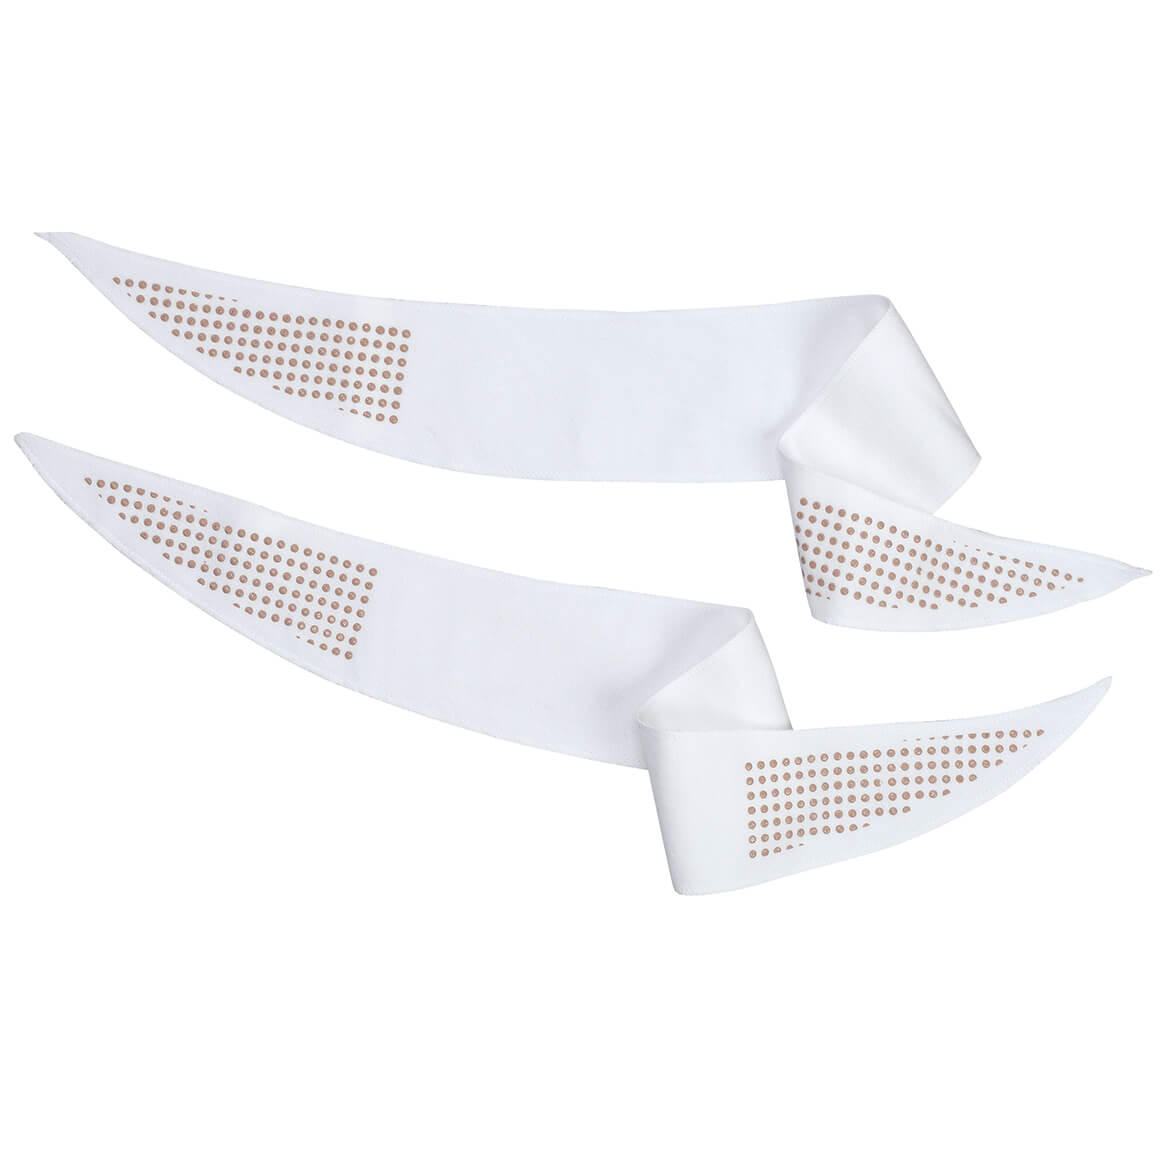 Tummy Liners with Anti-Slip Comfort Dots, Set of 2